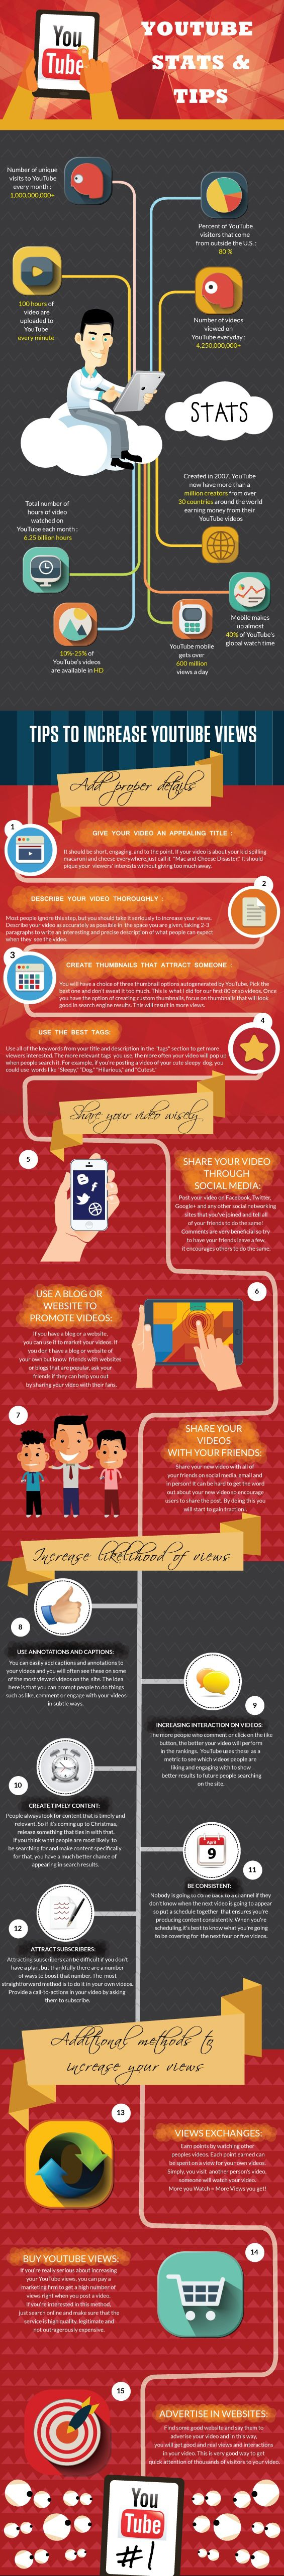 YouTube Stats and tips - #socialmedia #infographic